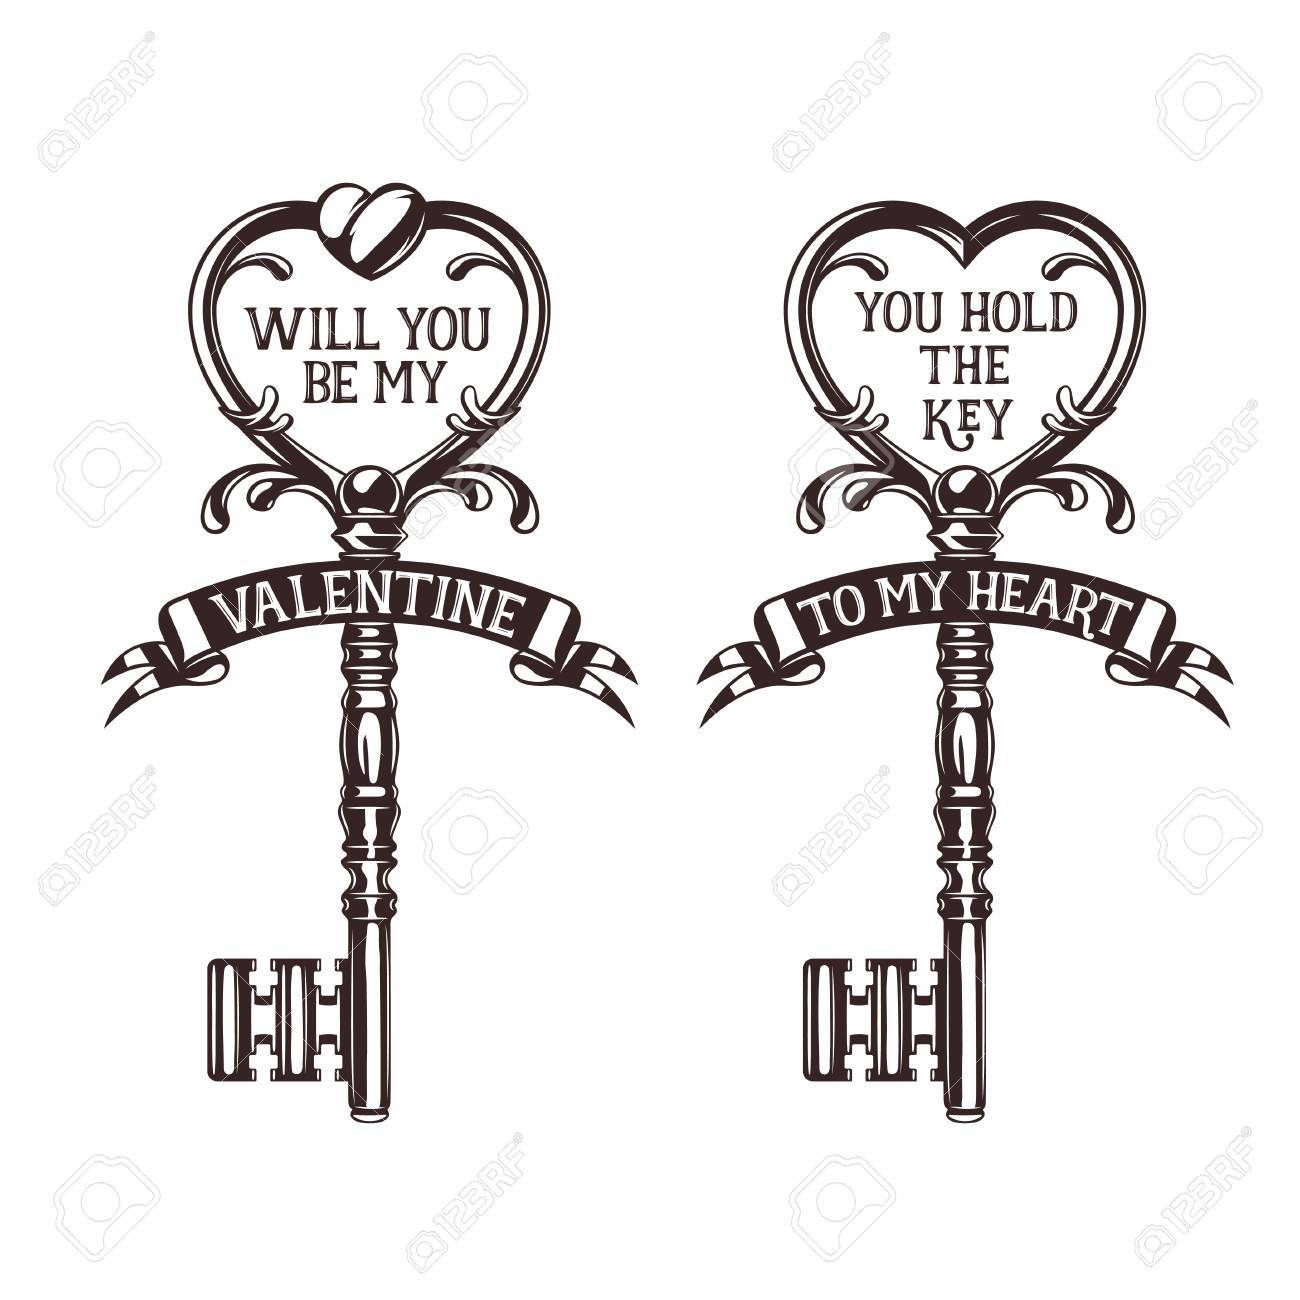 Set Of Heart Shaped Keys With Quotes Related To Valentines Day